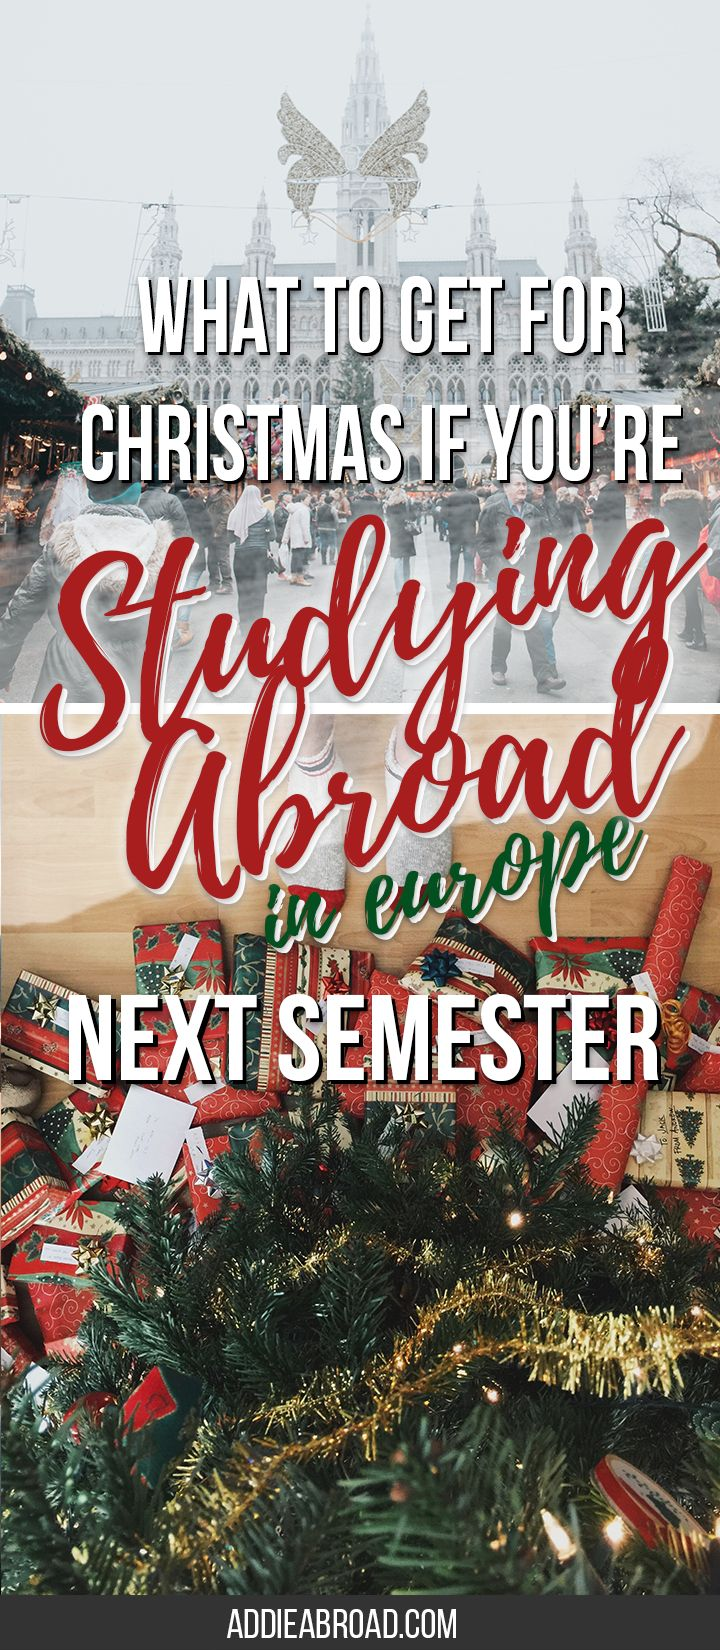 Are you about to study abroad in Europe? Don't know what to ask for for Christmas, over even what to pack for Study Abroad? Check out this great Christmas list for studying abroad in #Europe! #studyabroad via @addieabroad